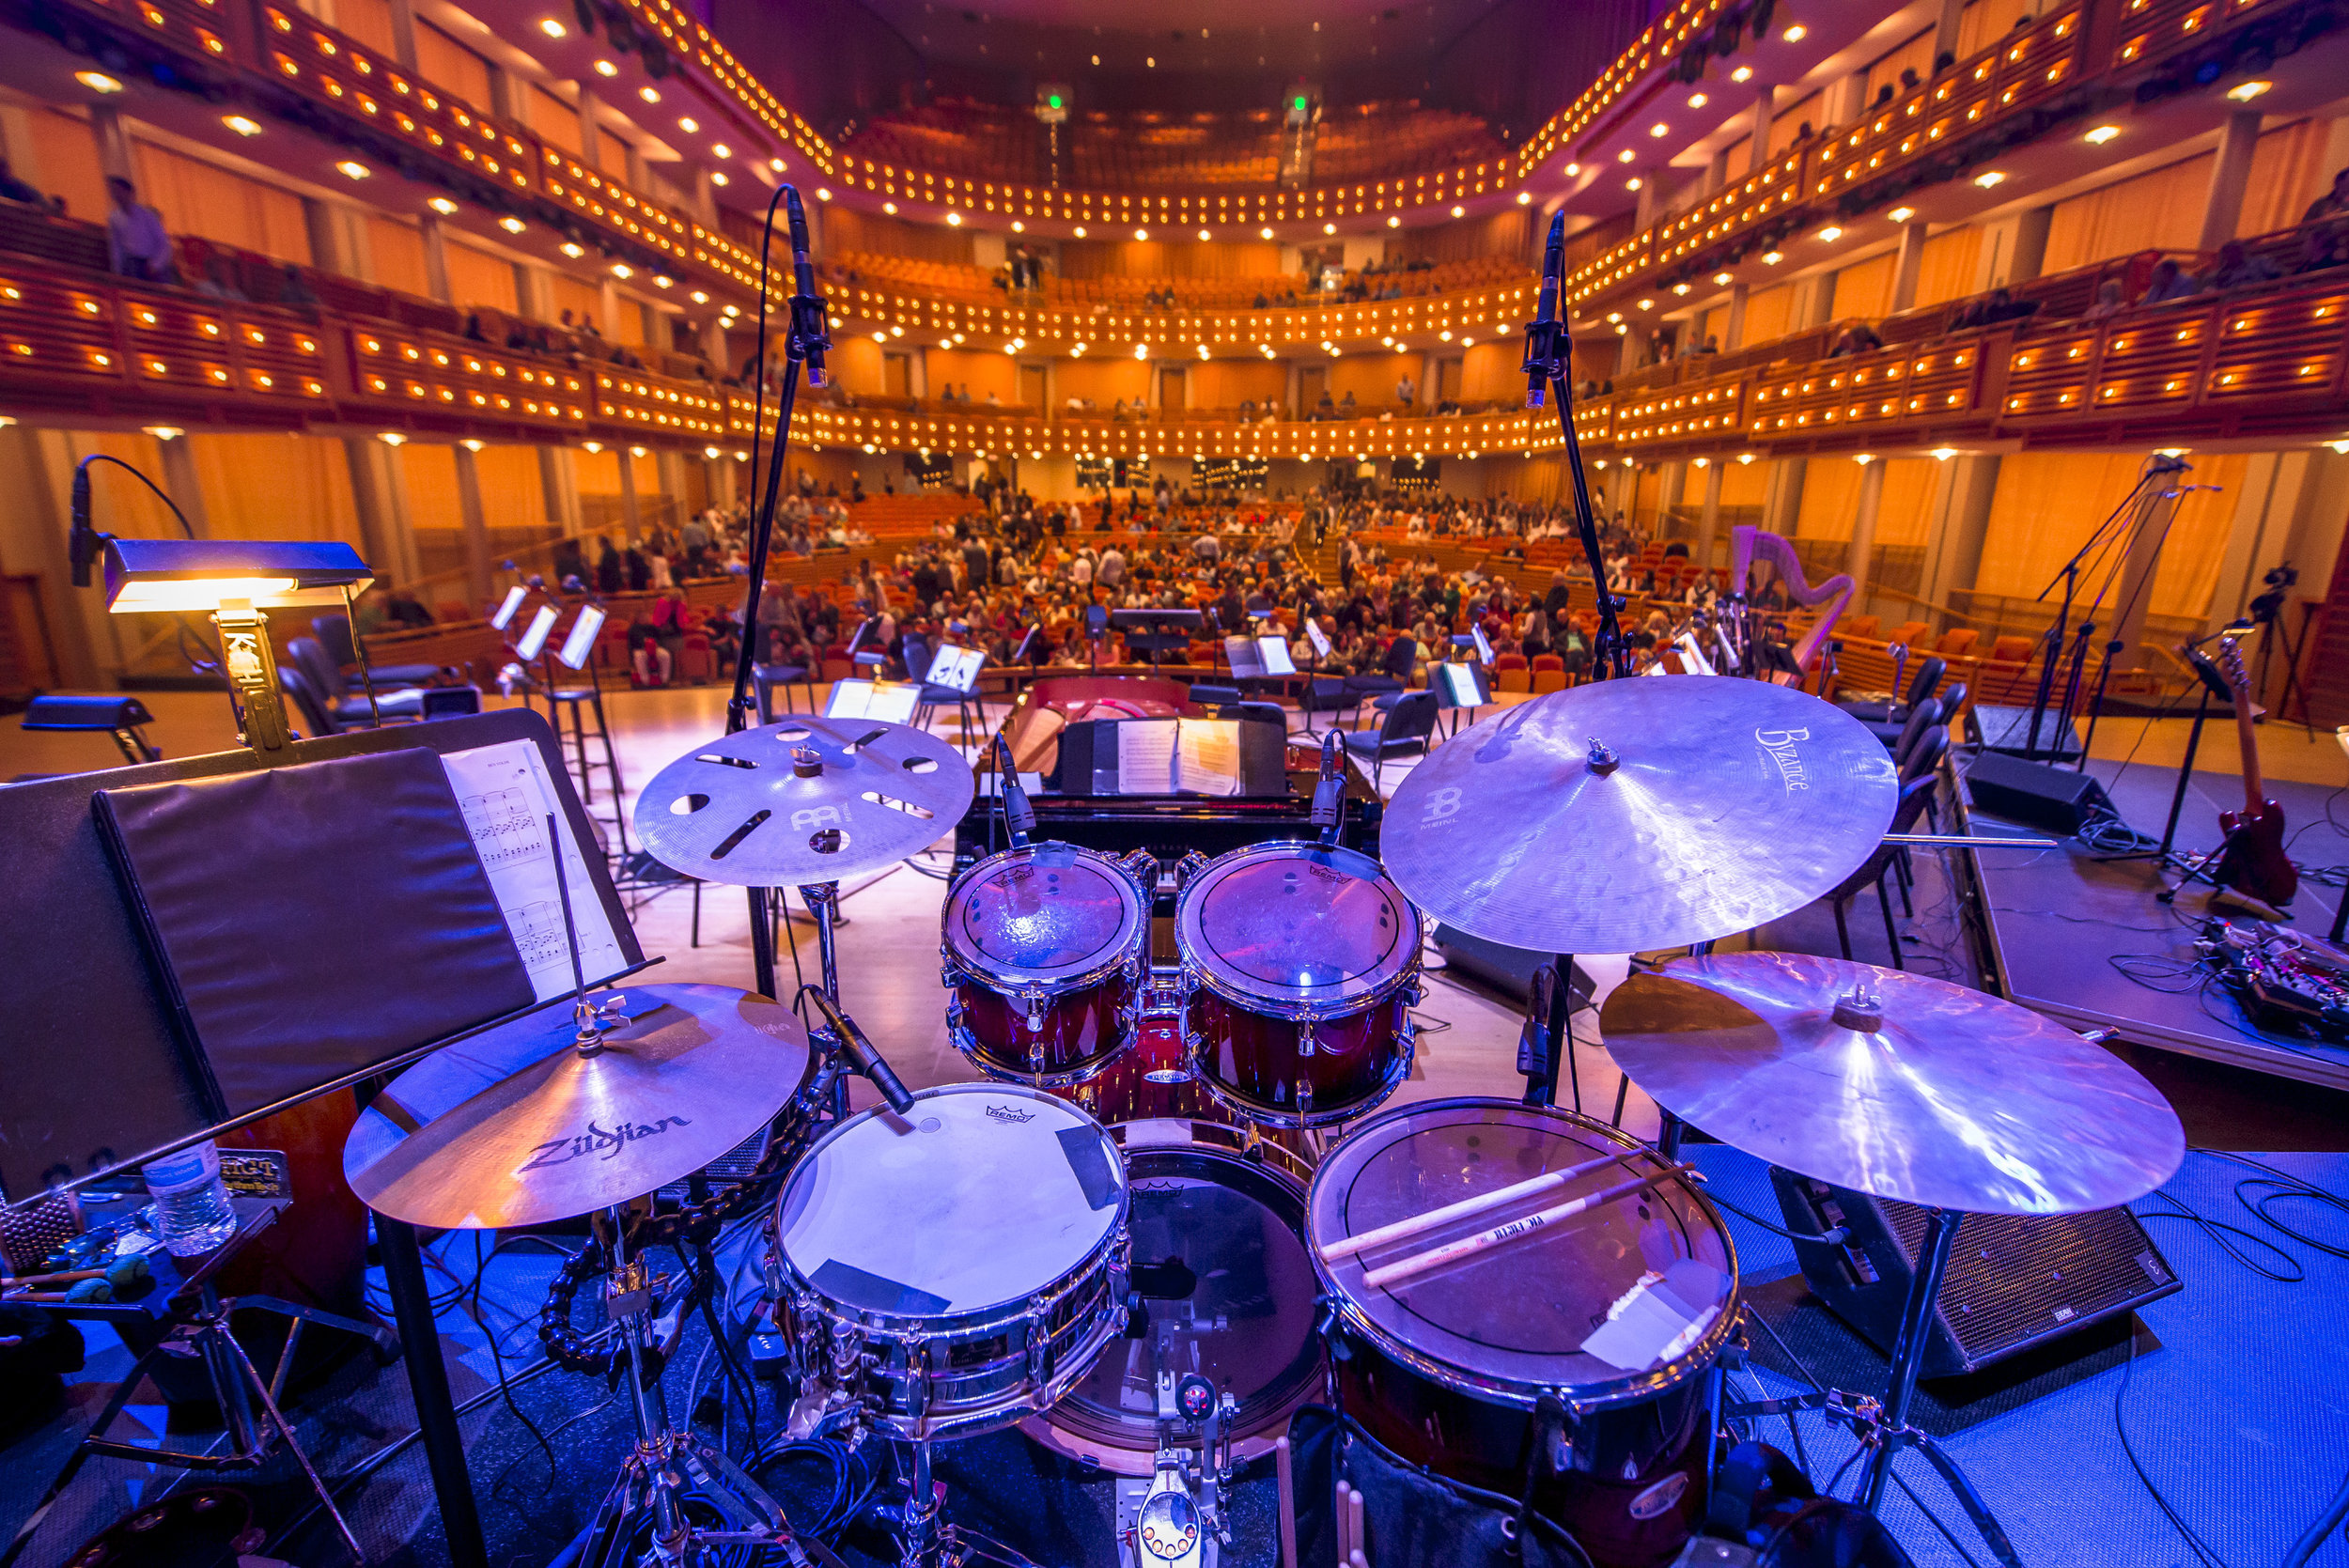 2018_03_29 Nu Deco with Ben Folds at Arsht-3240.jpg